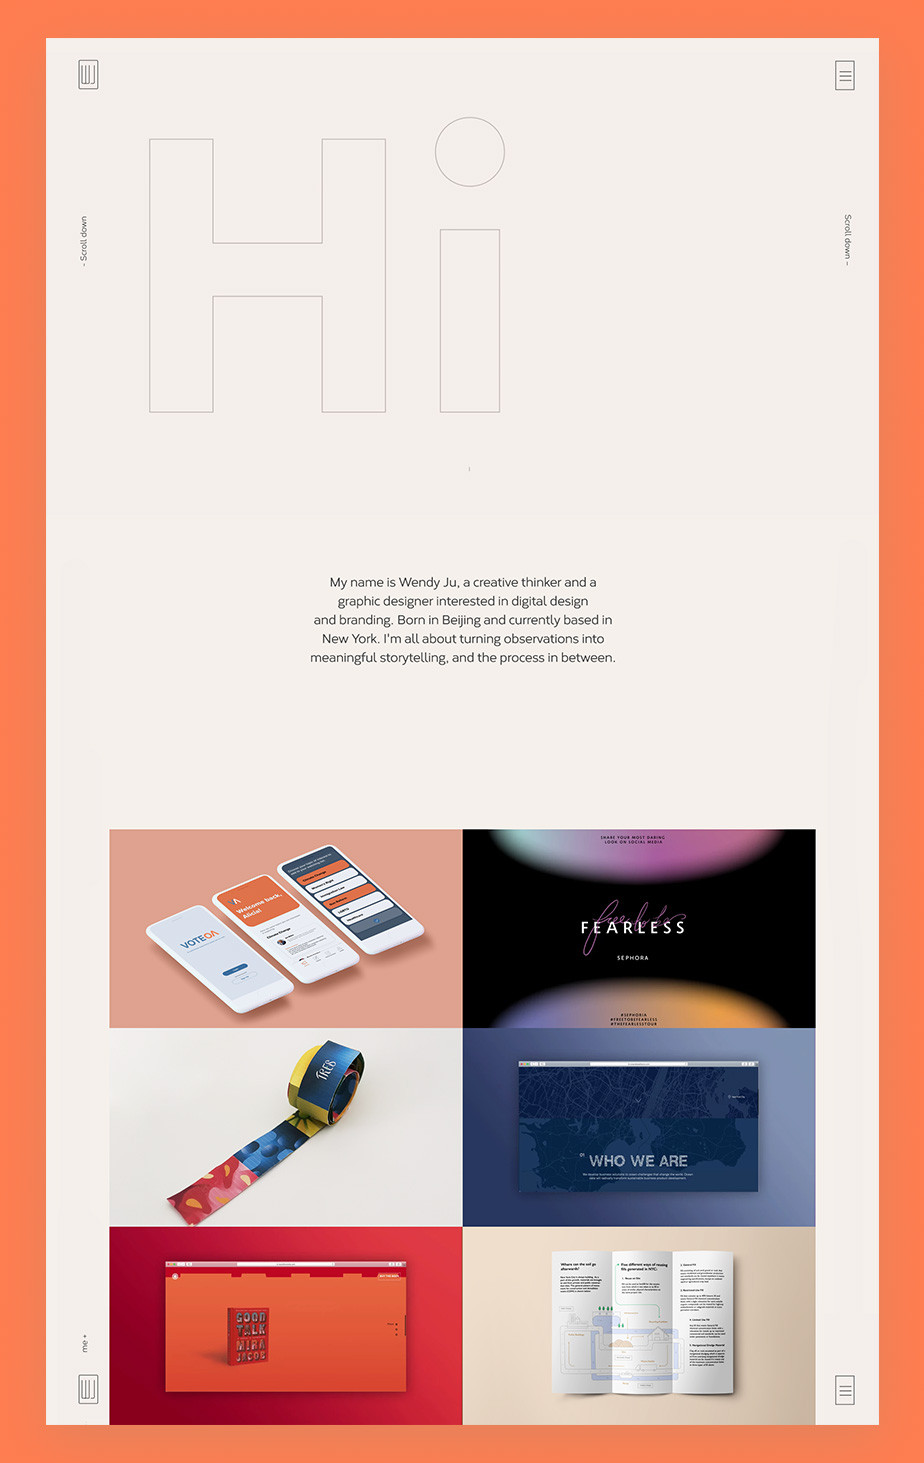 Wix website example by Wendy Ju